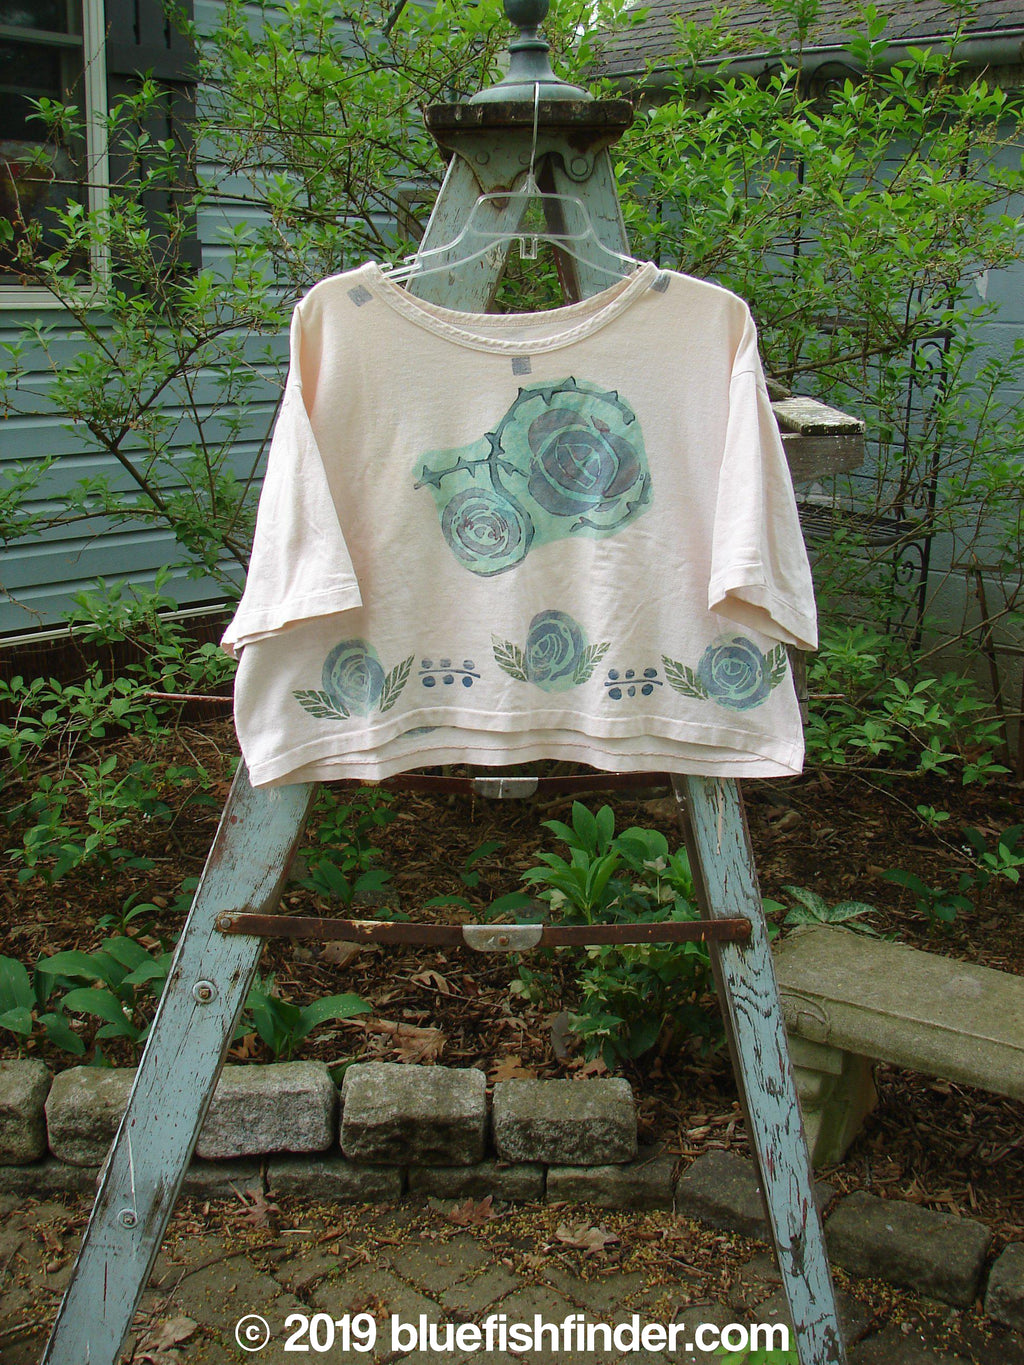 Vintage Blue Fish Clothing 1991 Short Sleeved Crop T Roses Crème OSFA- Bluefishfinder.com